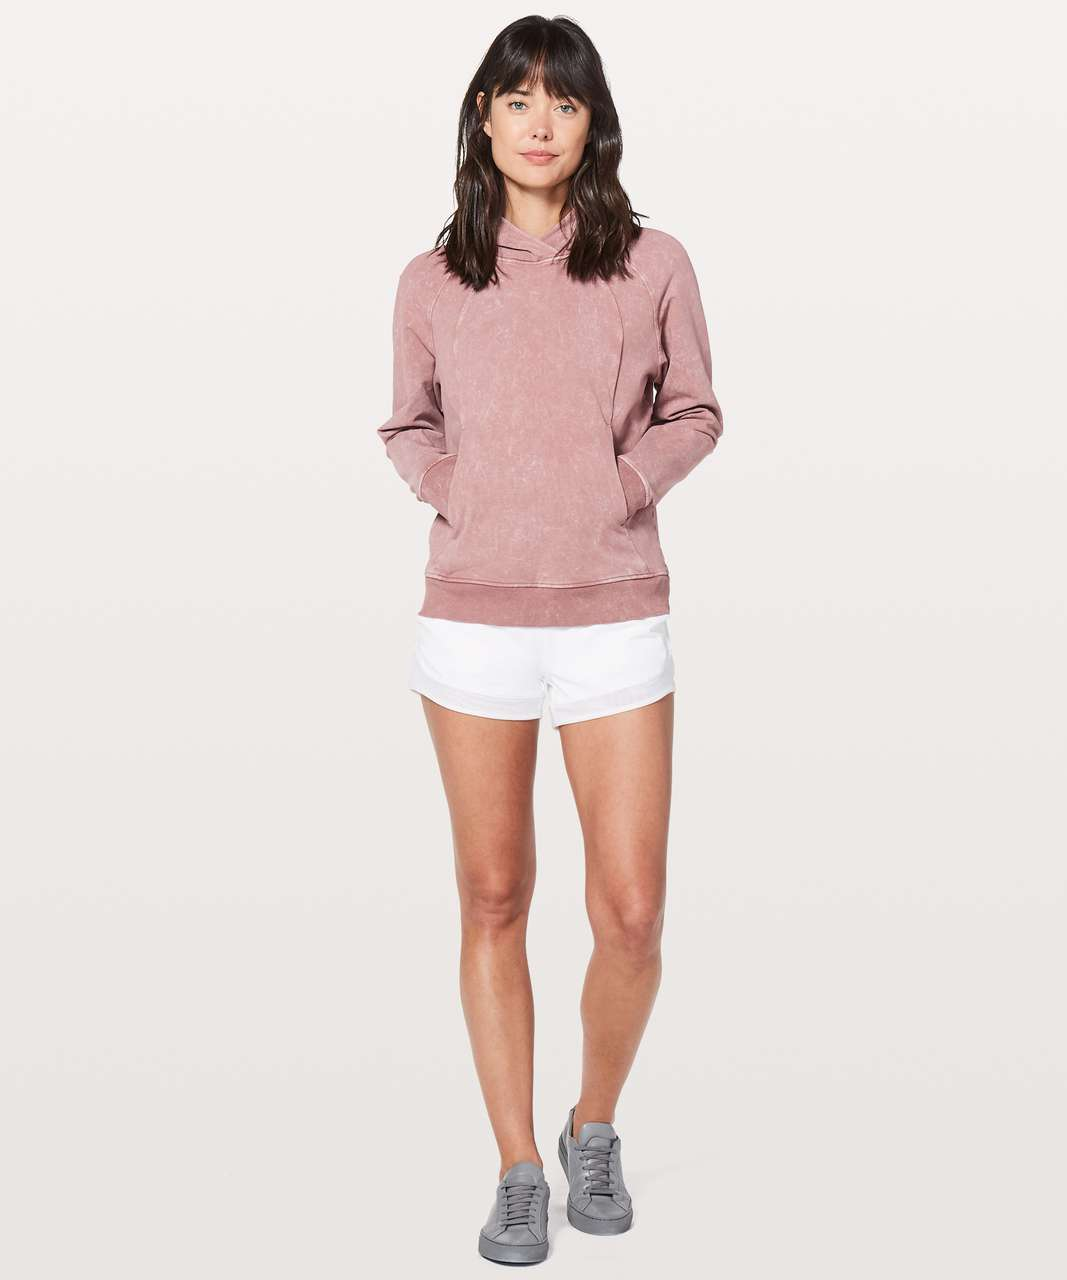 Lululemon Scuba Pullover - Washed Quicksand